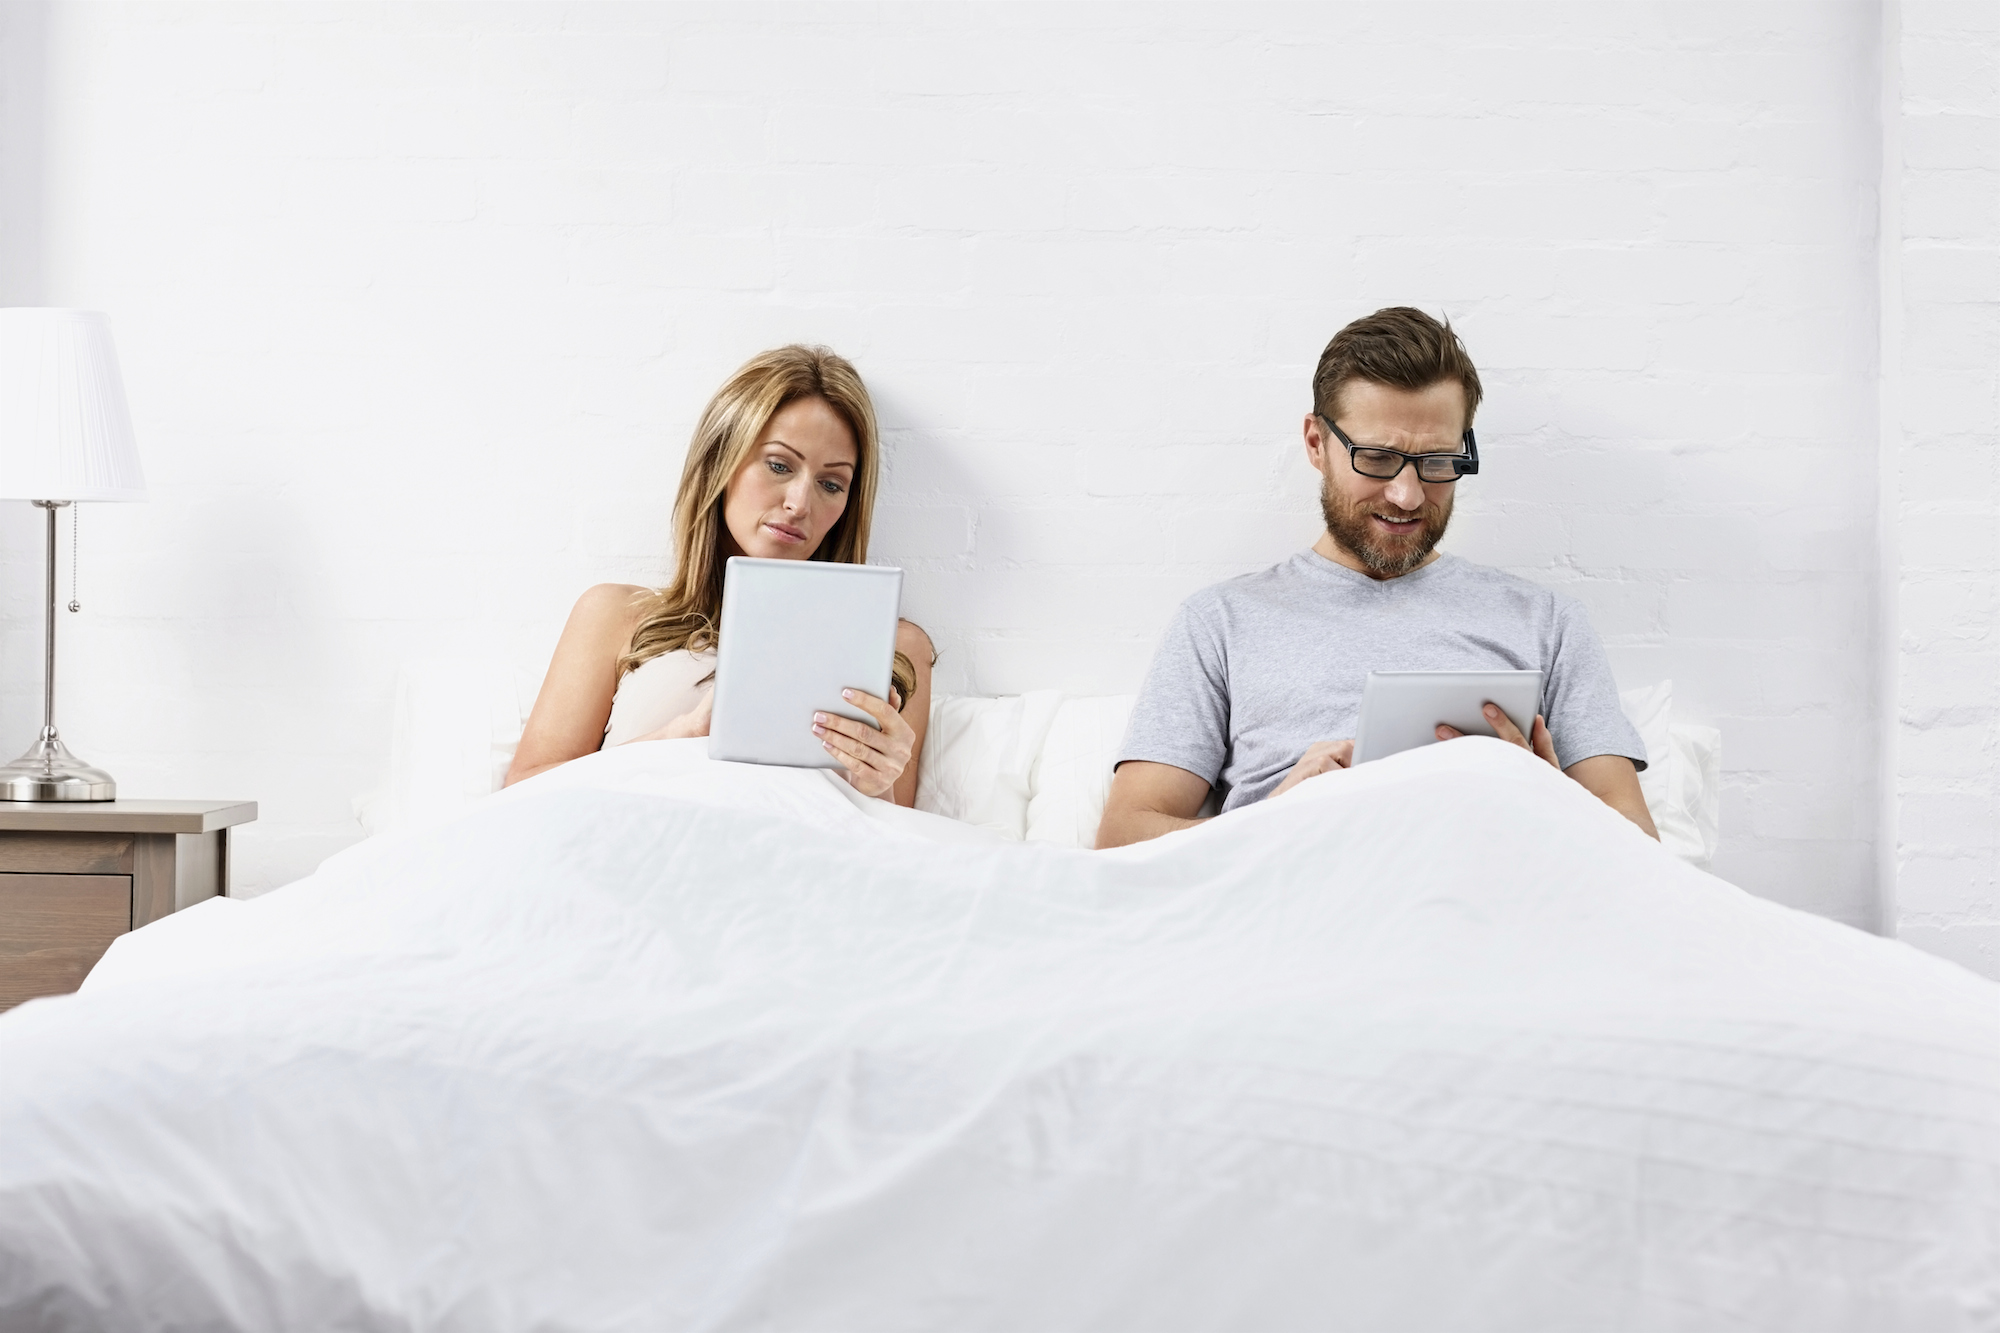 couple-bed-phones